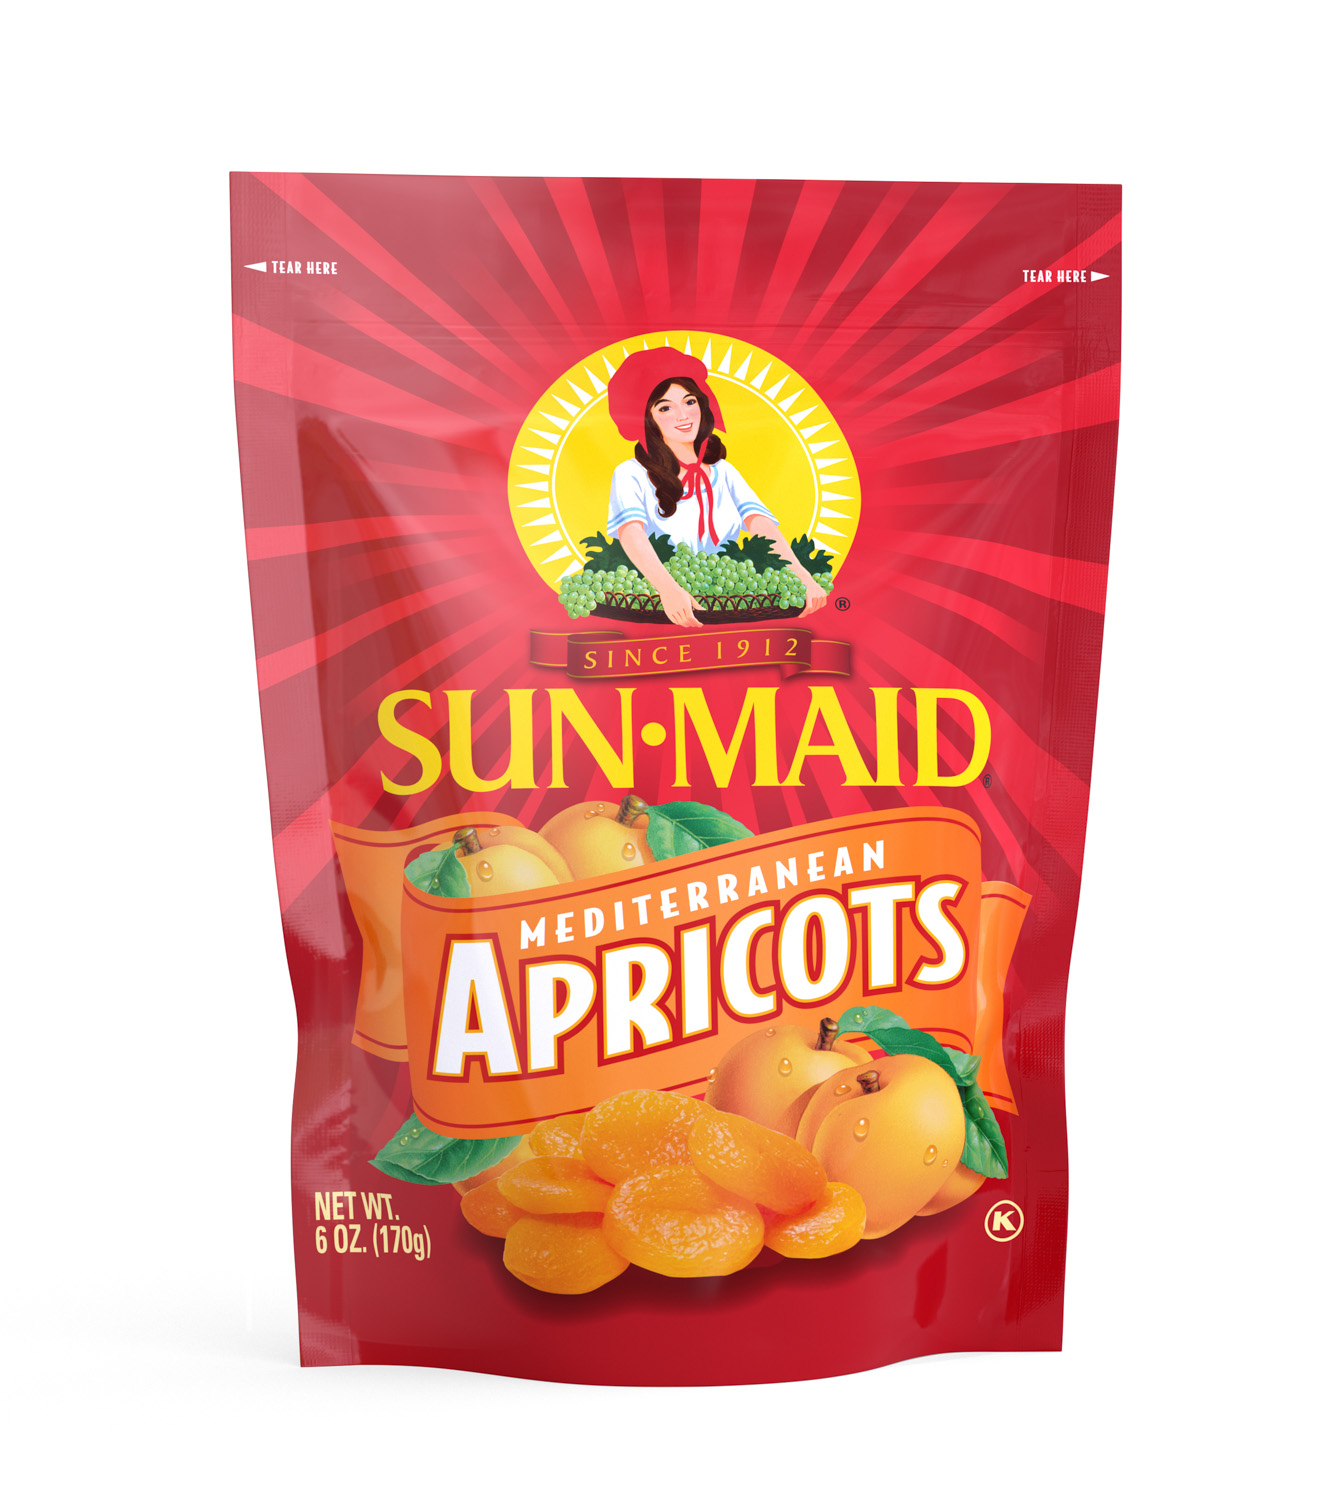 181218_sunmaid_7171_Apricots_Bag_v12.jpg